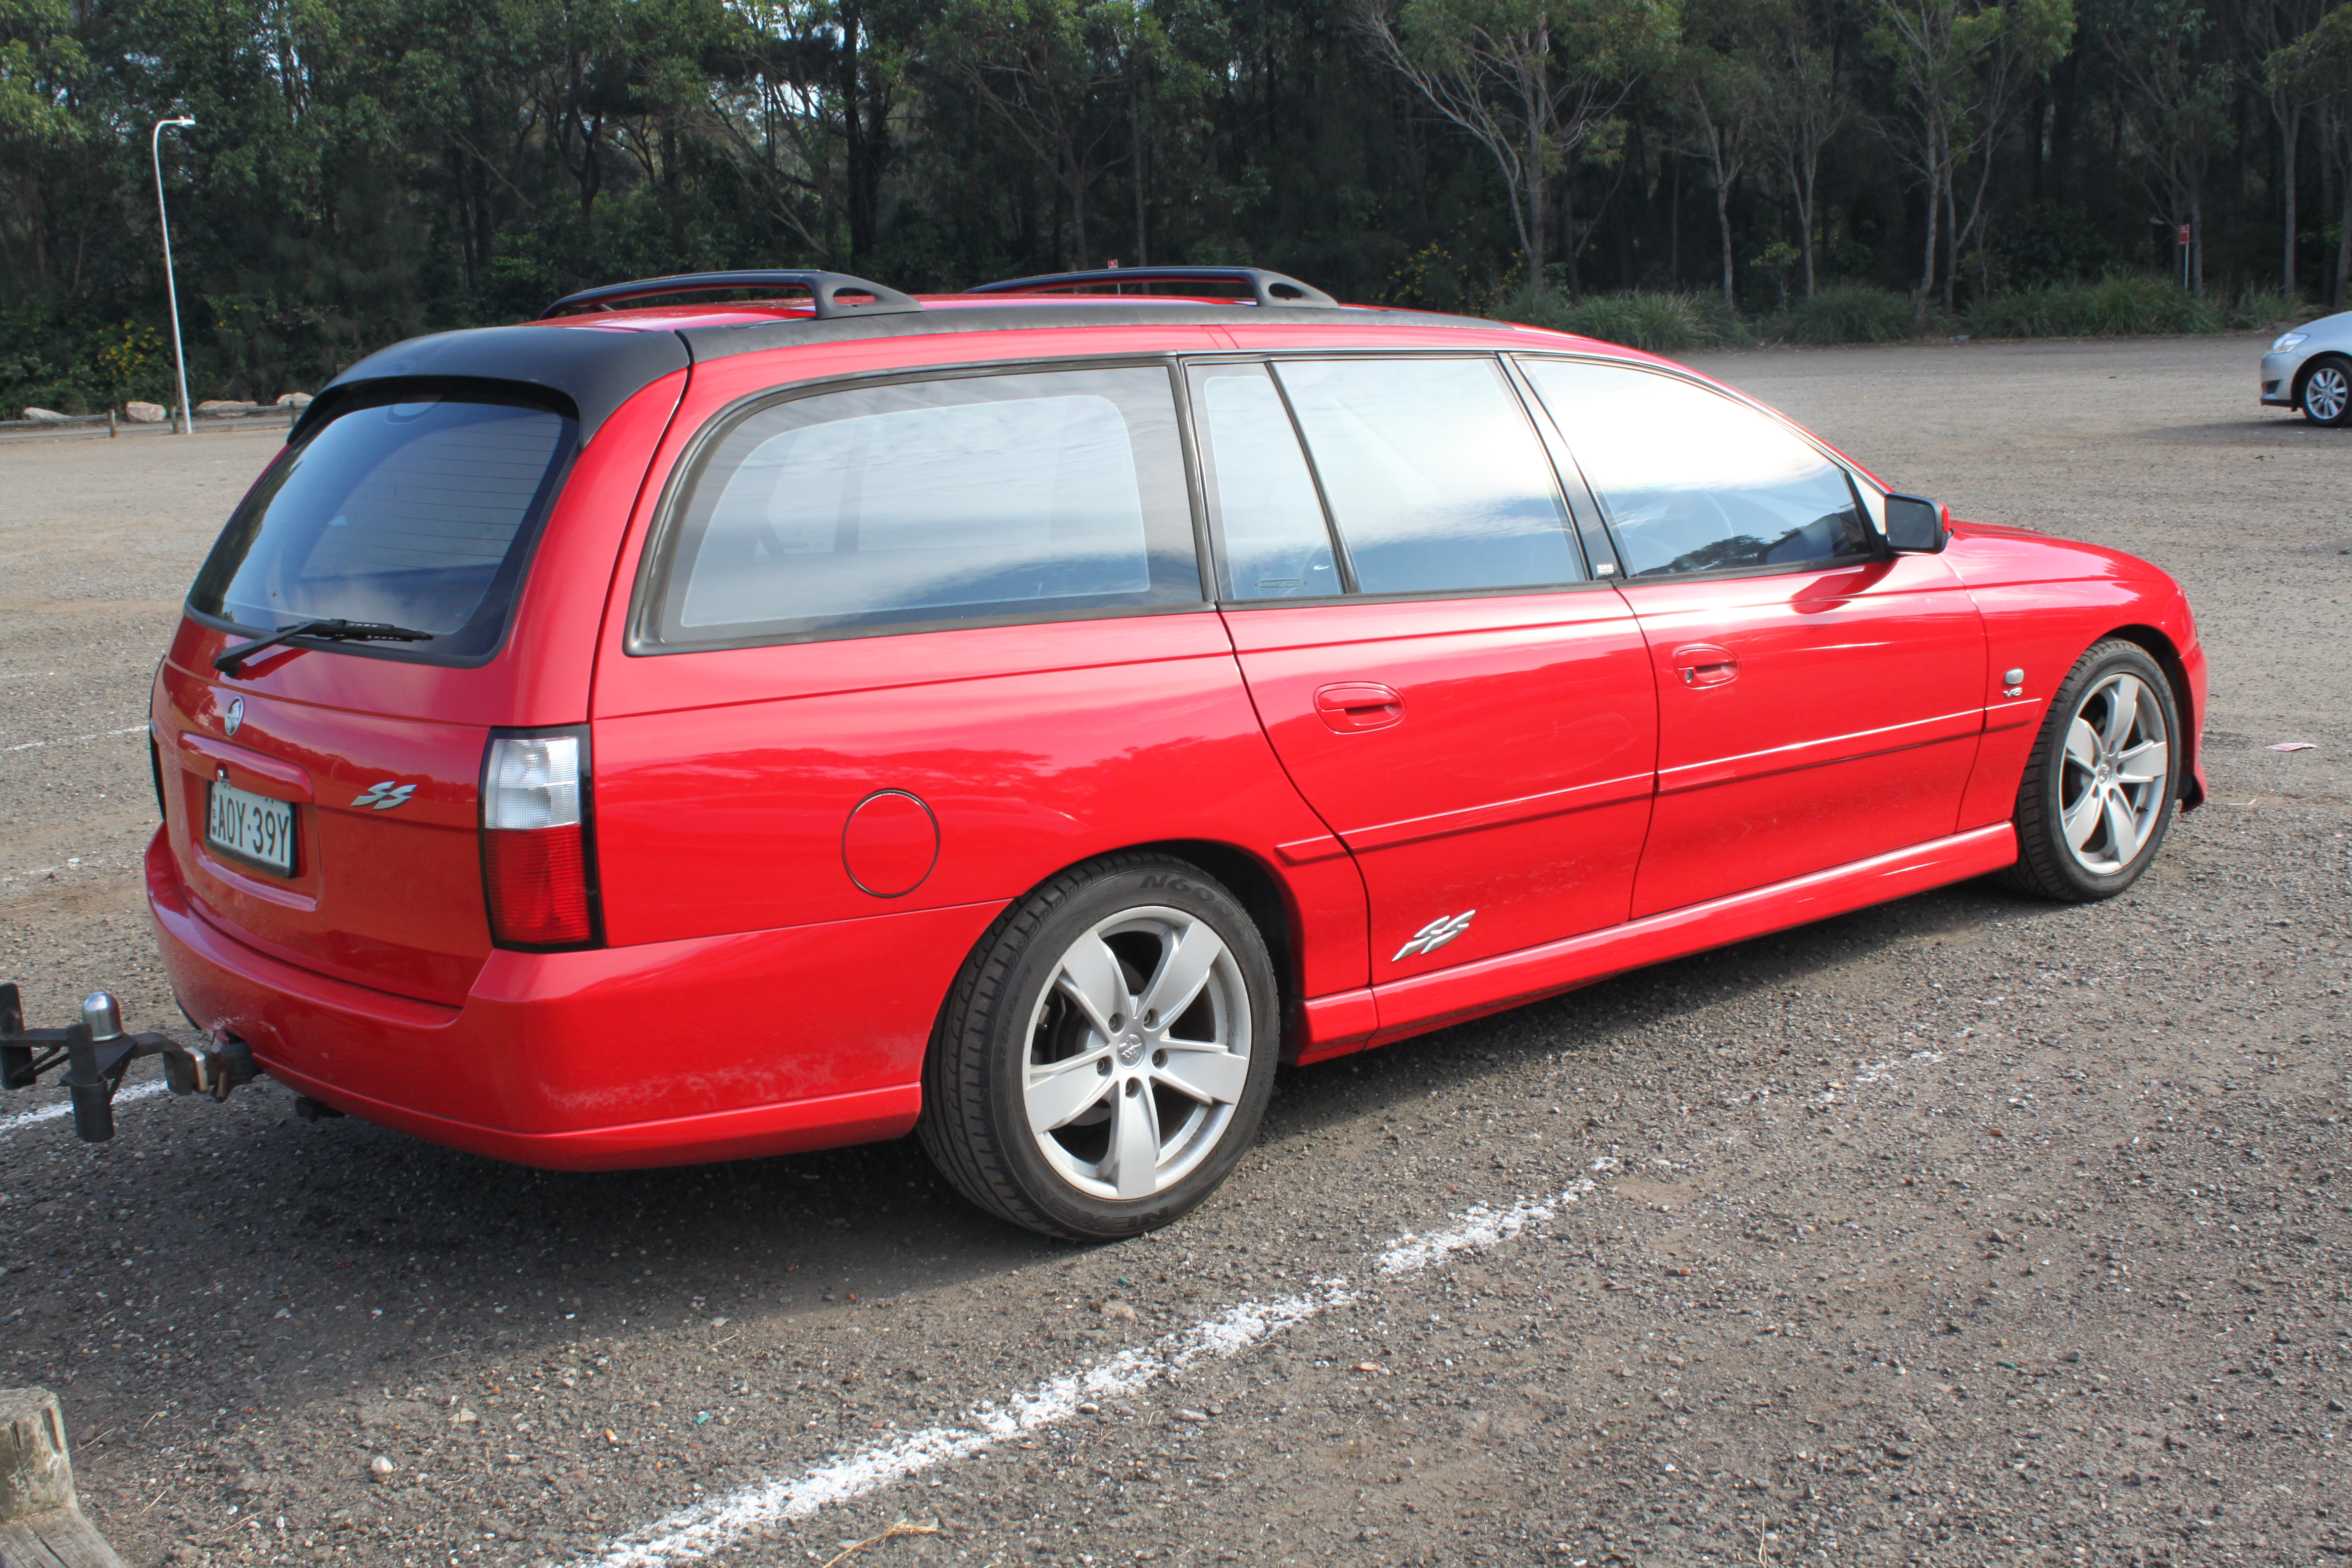 File:2003 Holden Commodore (VY) SS station wagon (26294173702) jpg